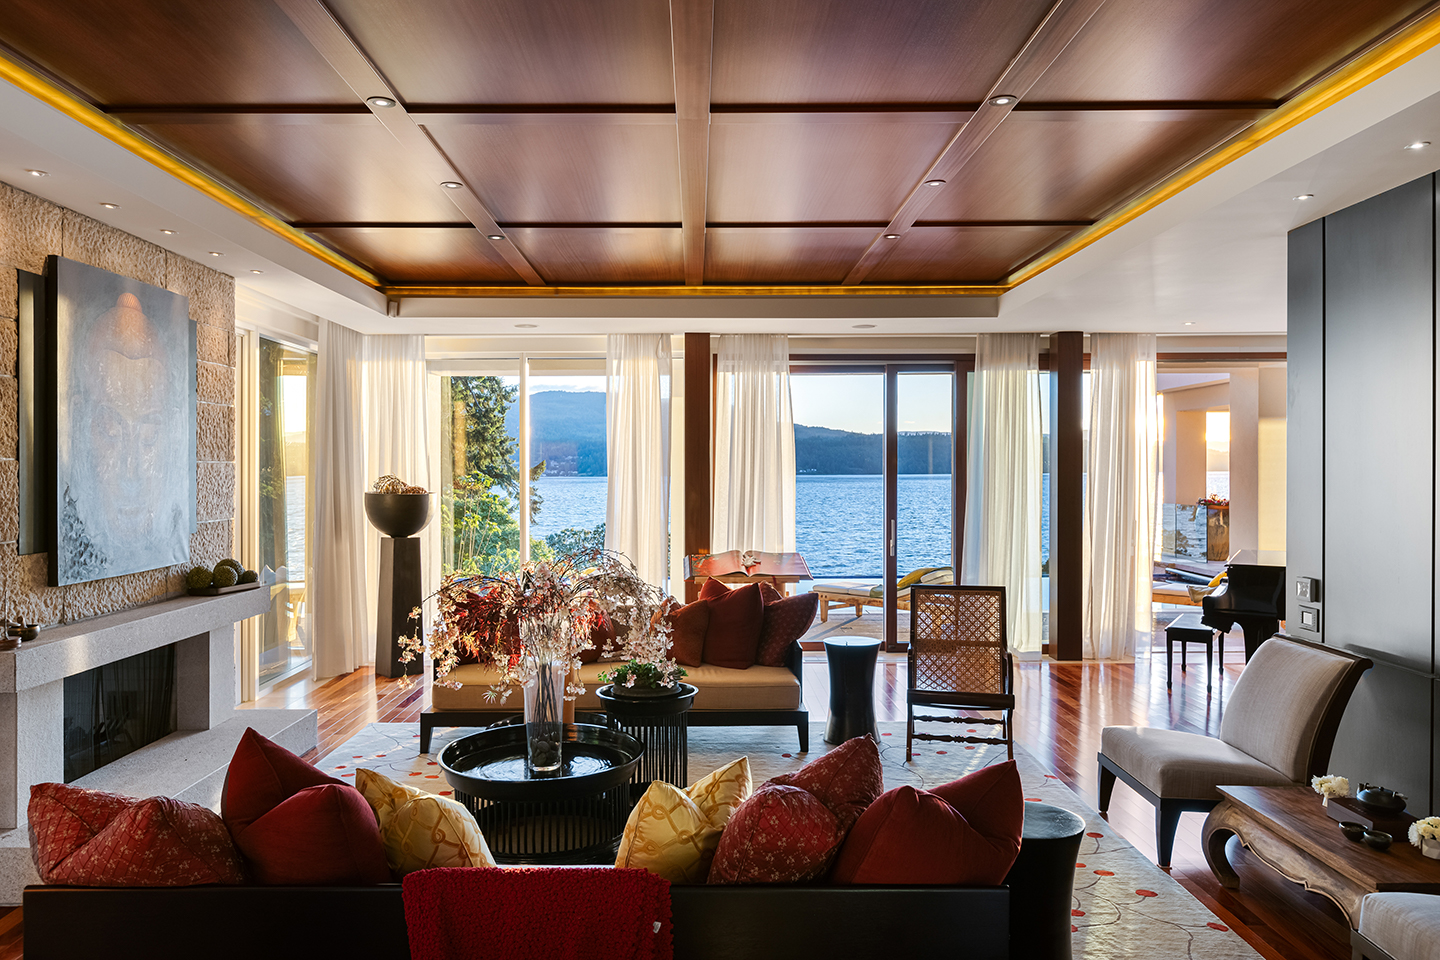 There are ocean and garden views from every room.